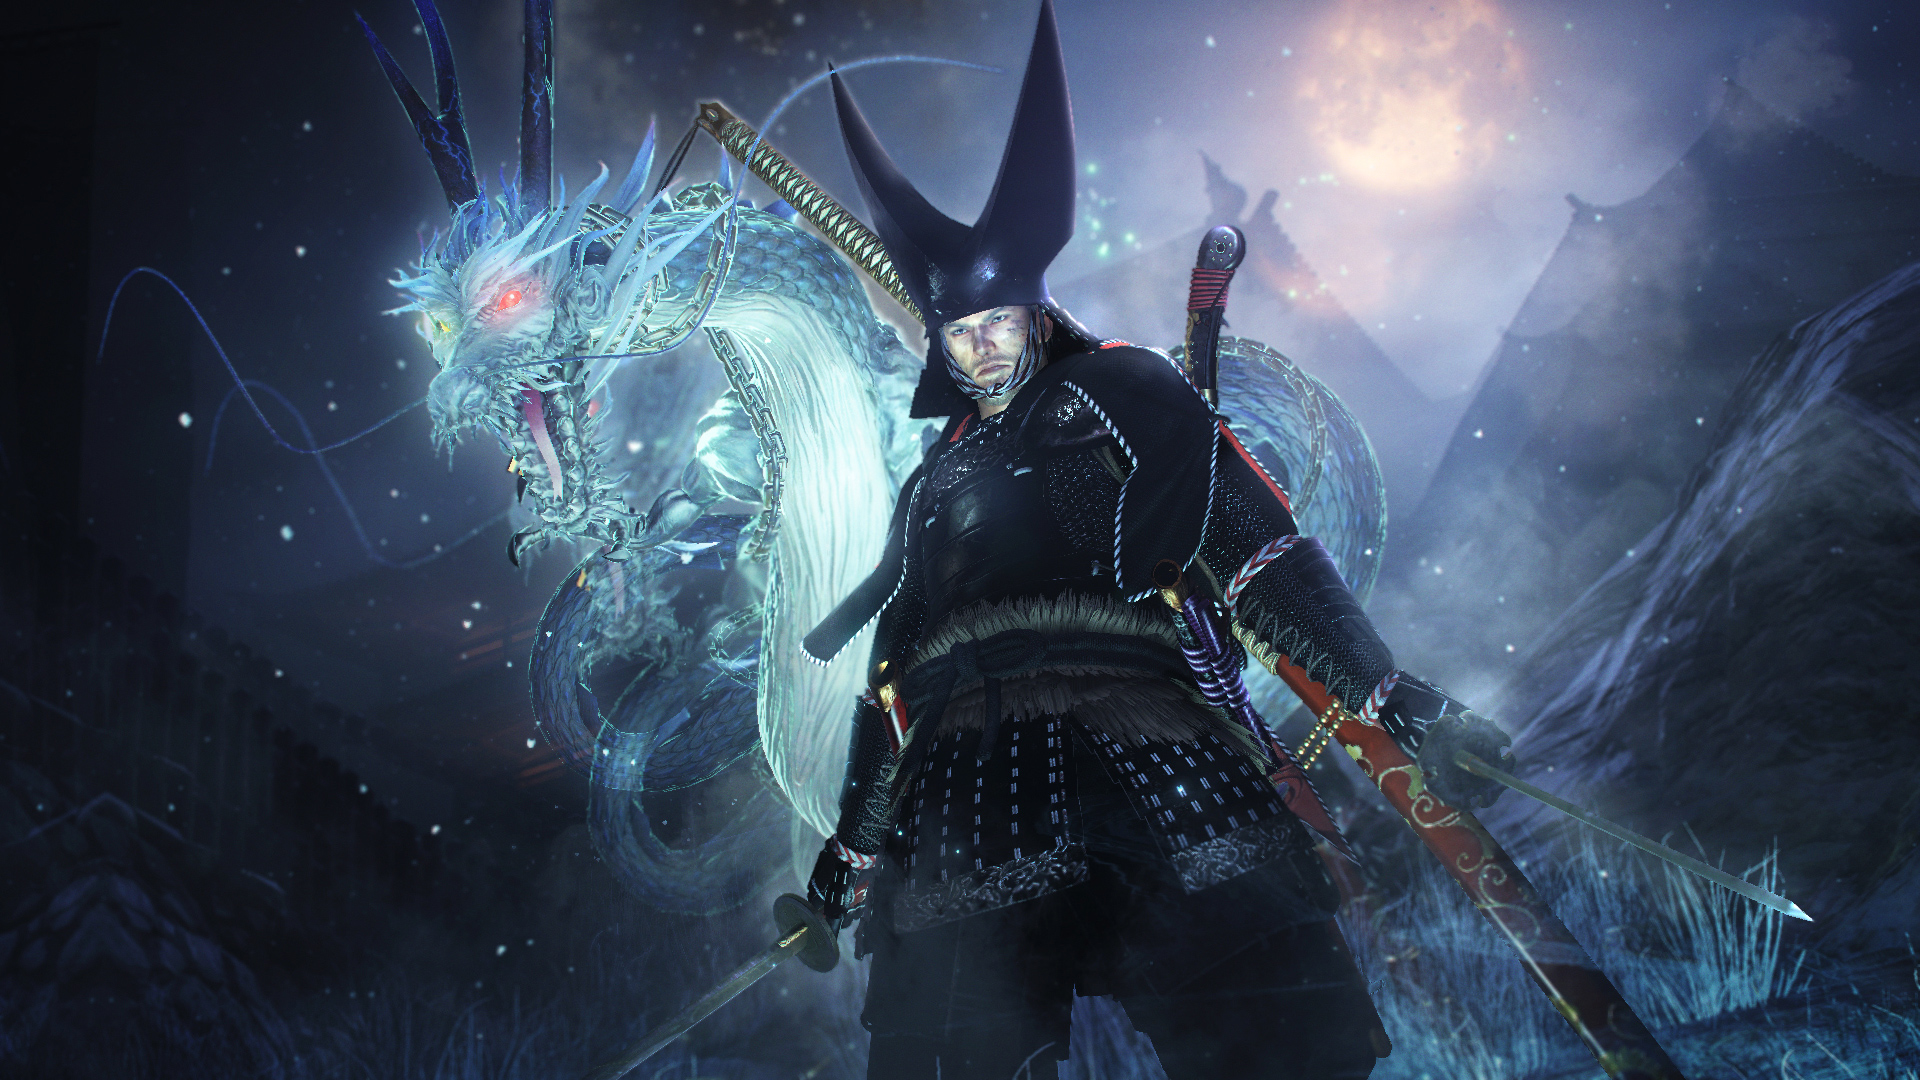 Take a look at Nioh's Dragon of the North DLC before Tuesday's launch screenshot